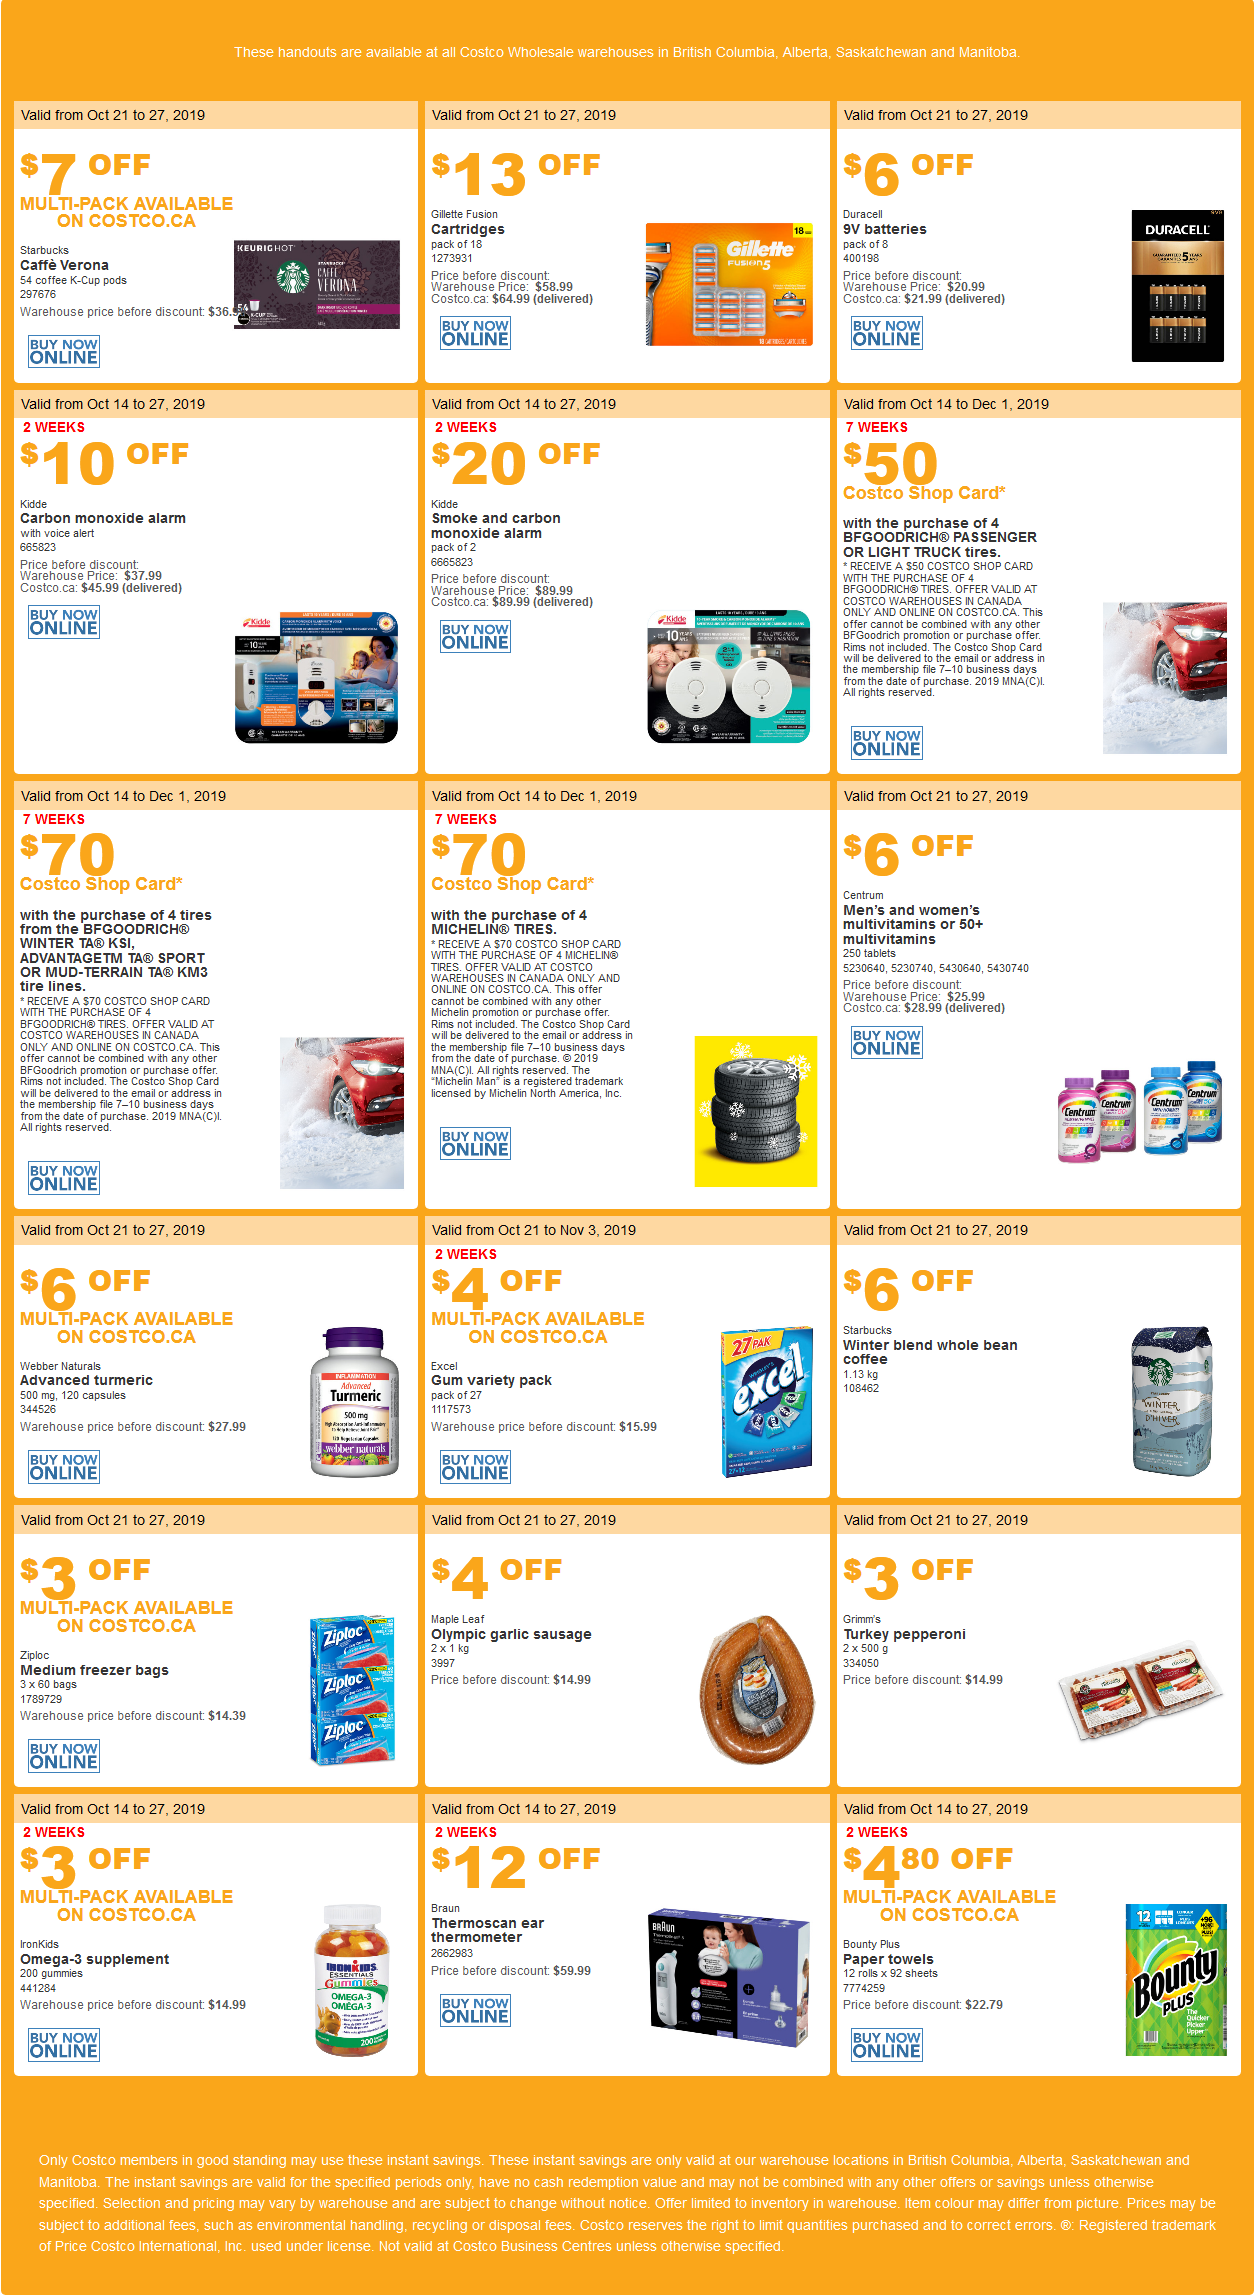 Costco Flyer for Oct 21-27, 2019 for BC, AB, SK, MB